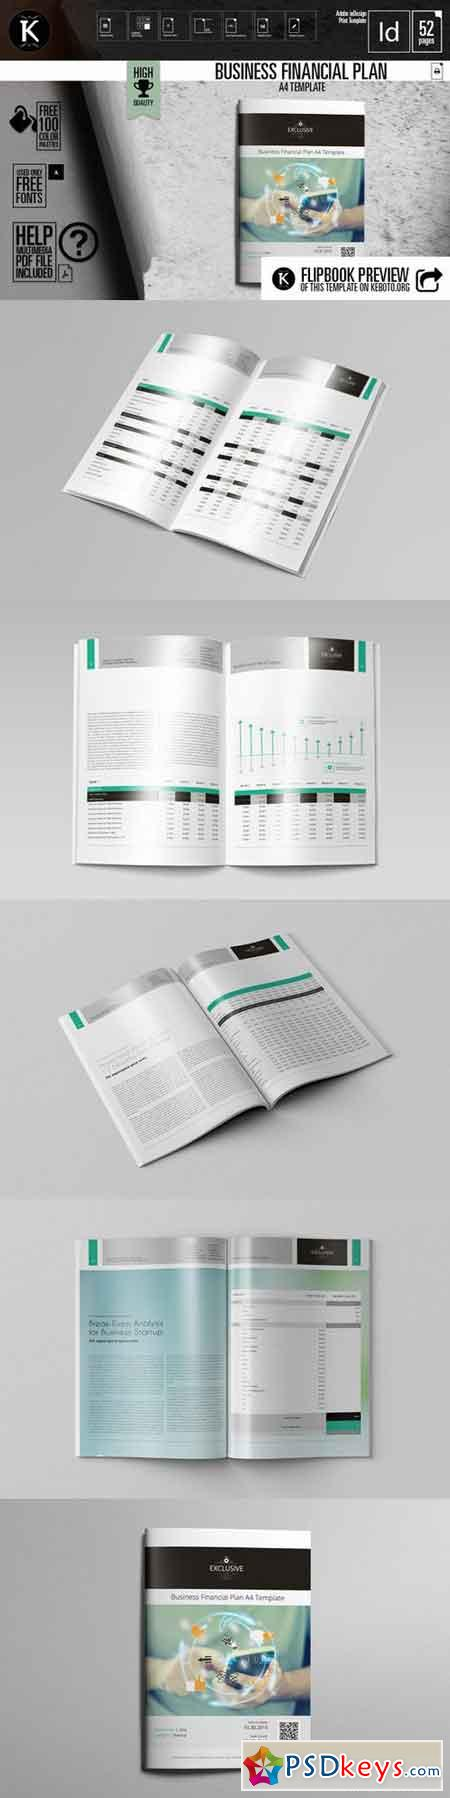 Lovely Template For Financial Plan Pictures Inspiration ...